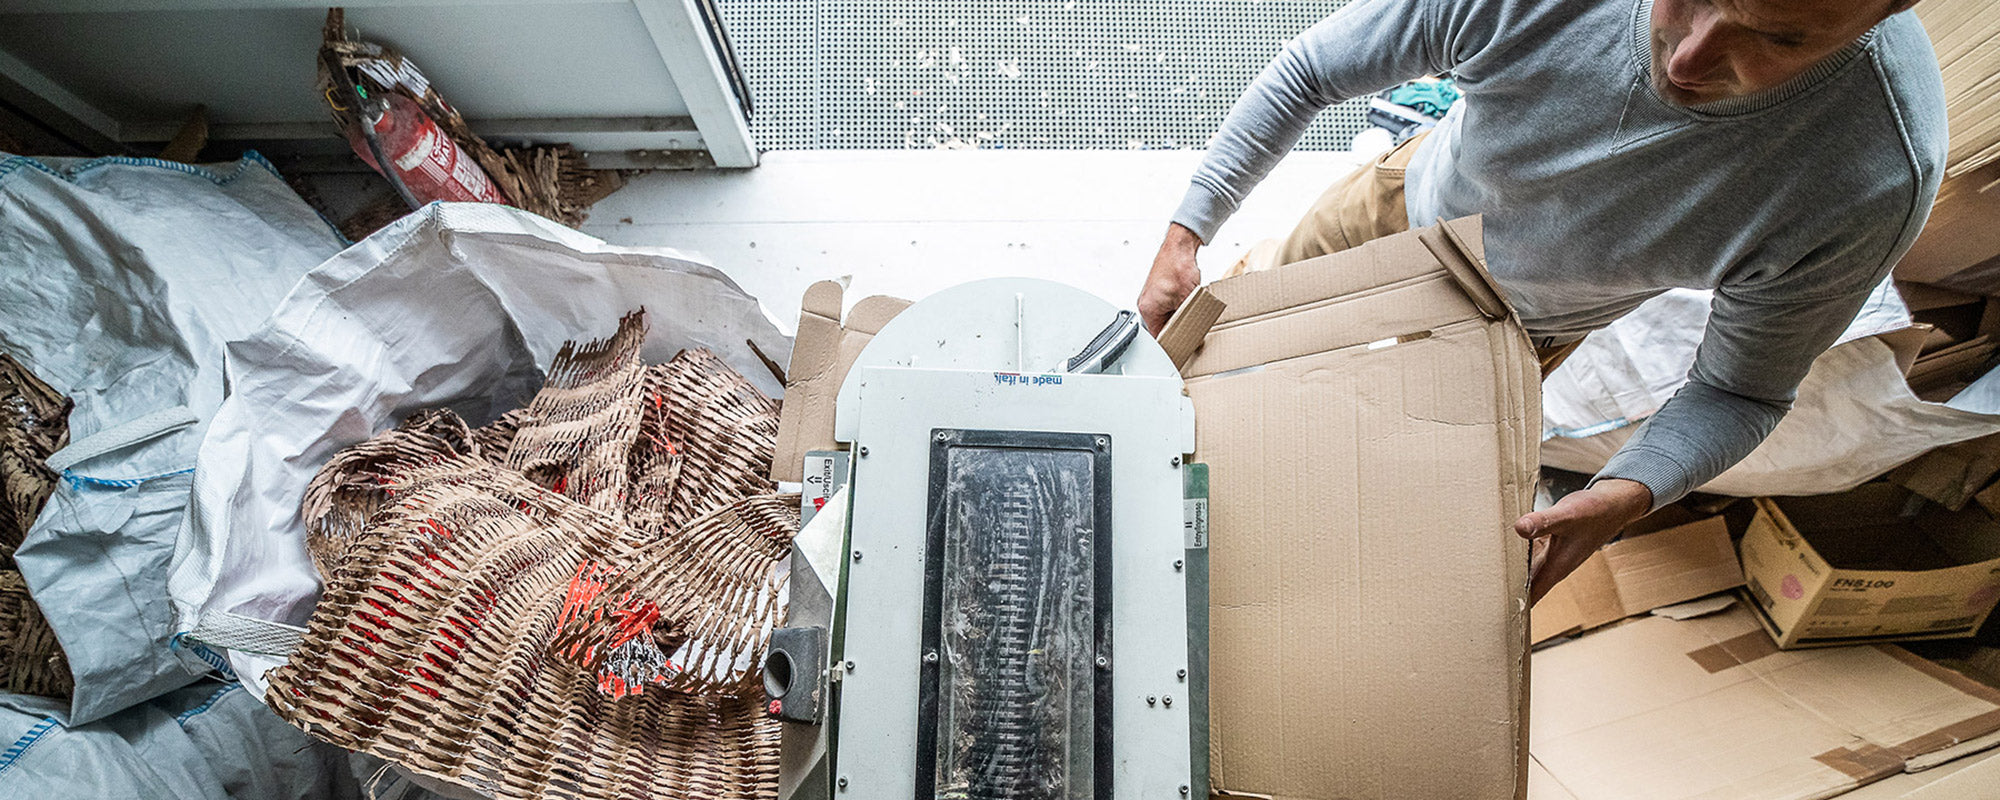 Shred project in action for environmental packaging